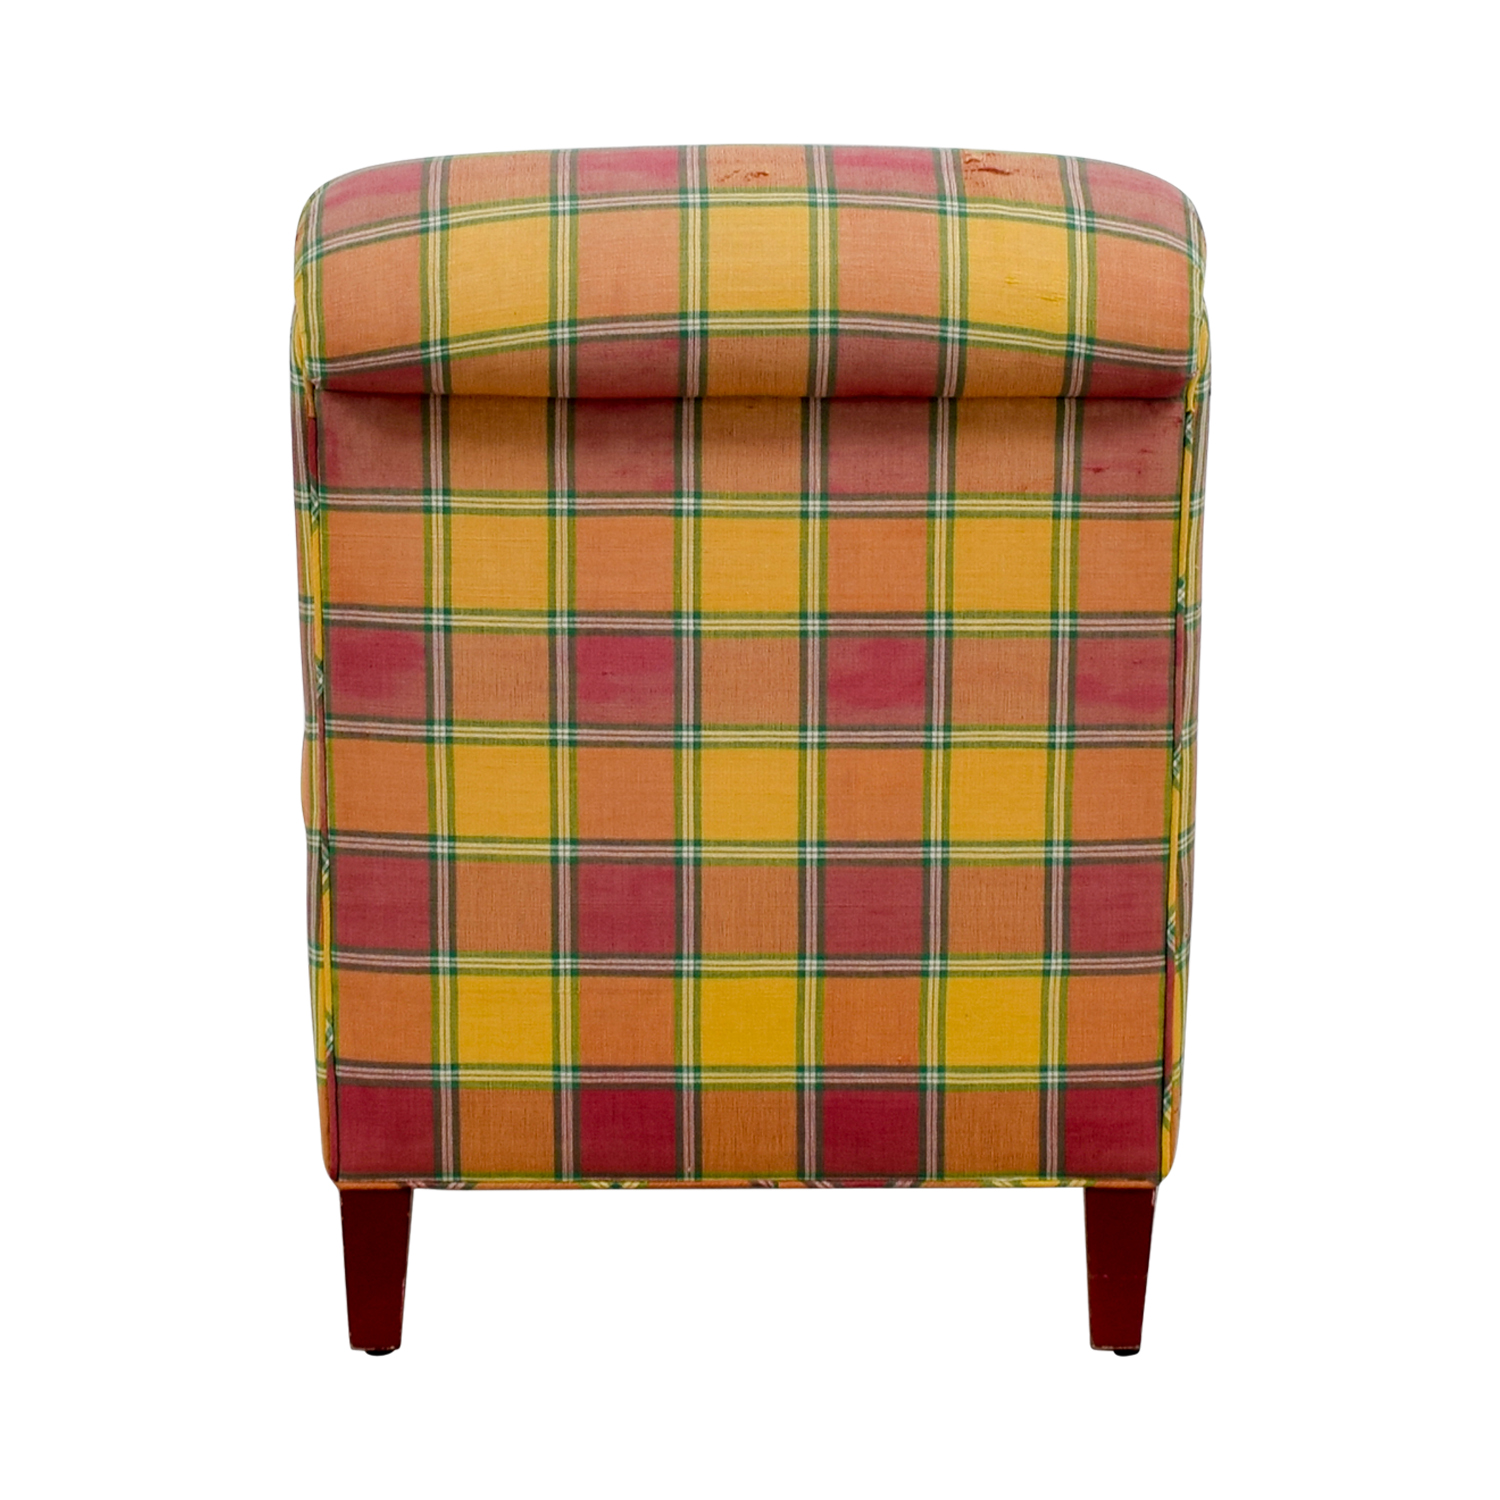 Furniture Masters Furniture Masters Red and Yellow Plaid Accent Chair nj